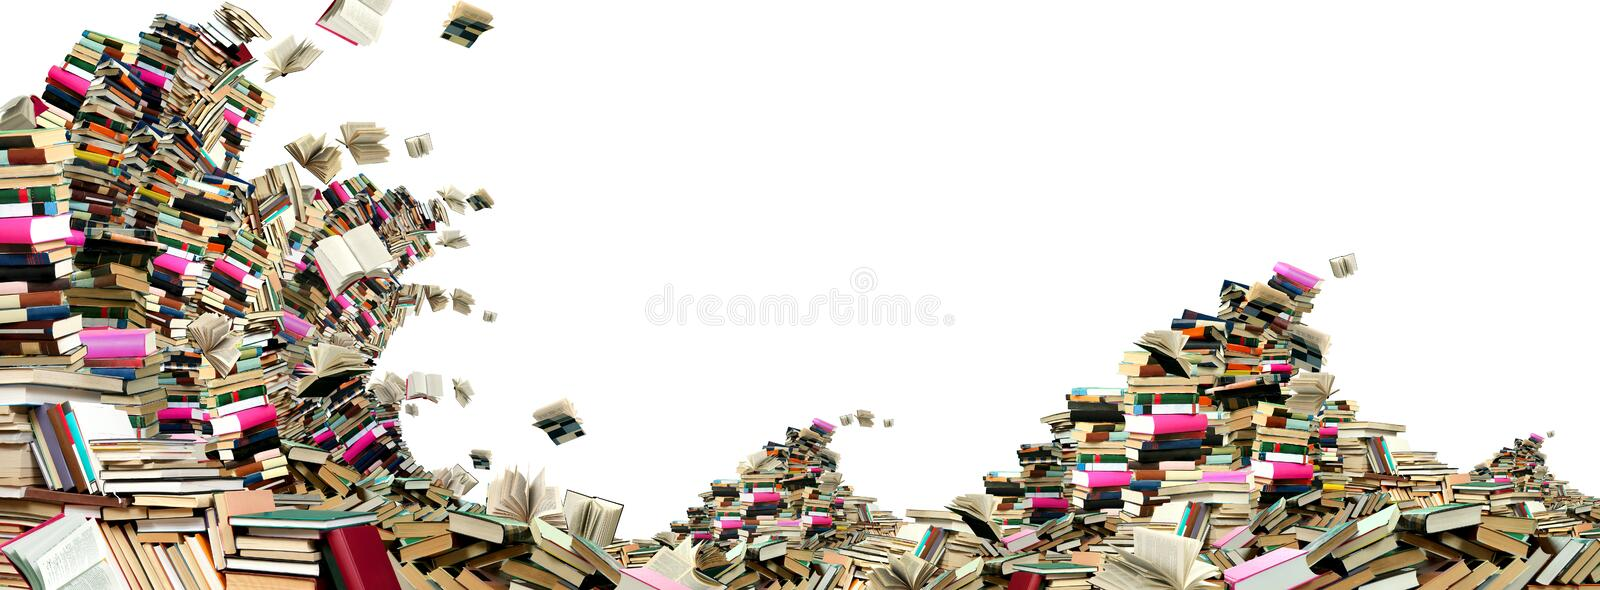 Book wave royalty free stock image